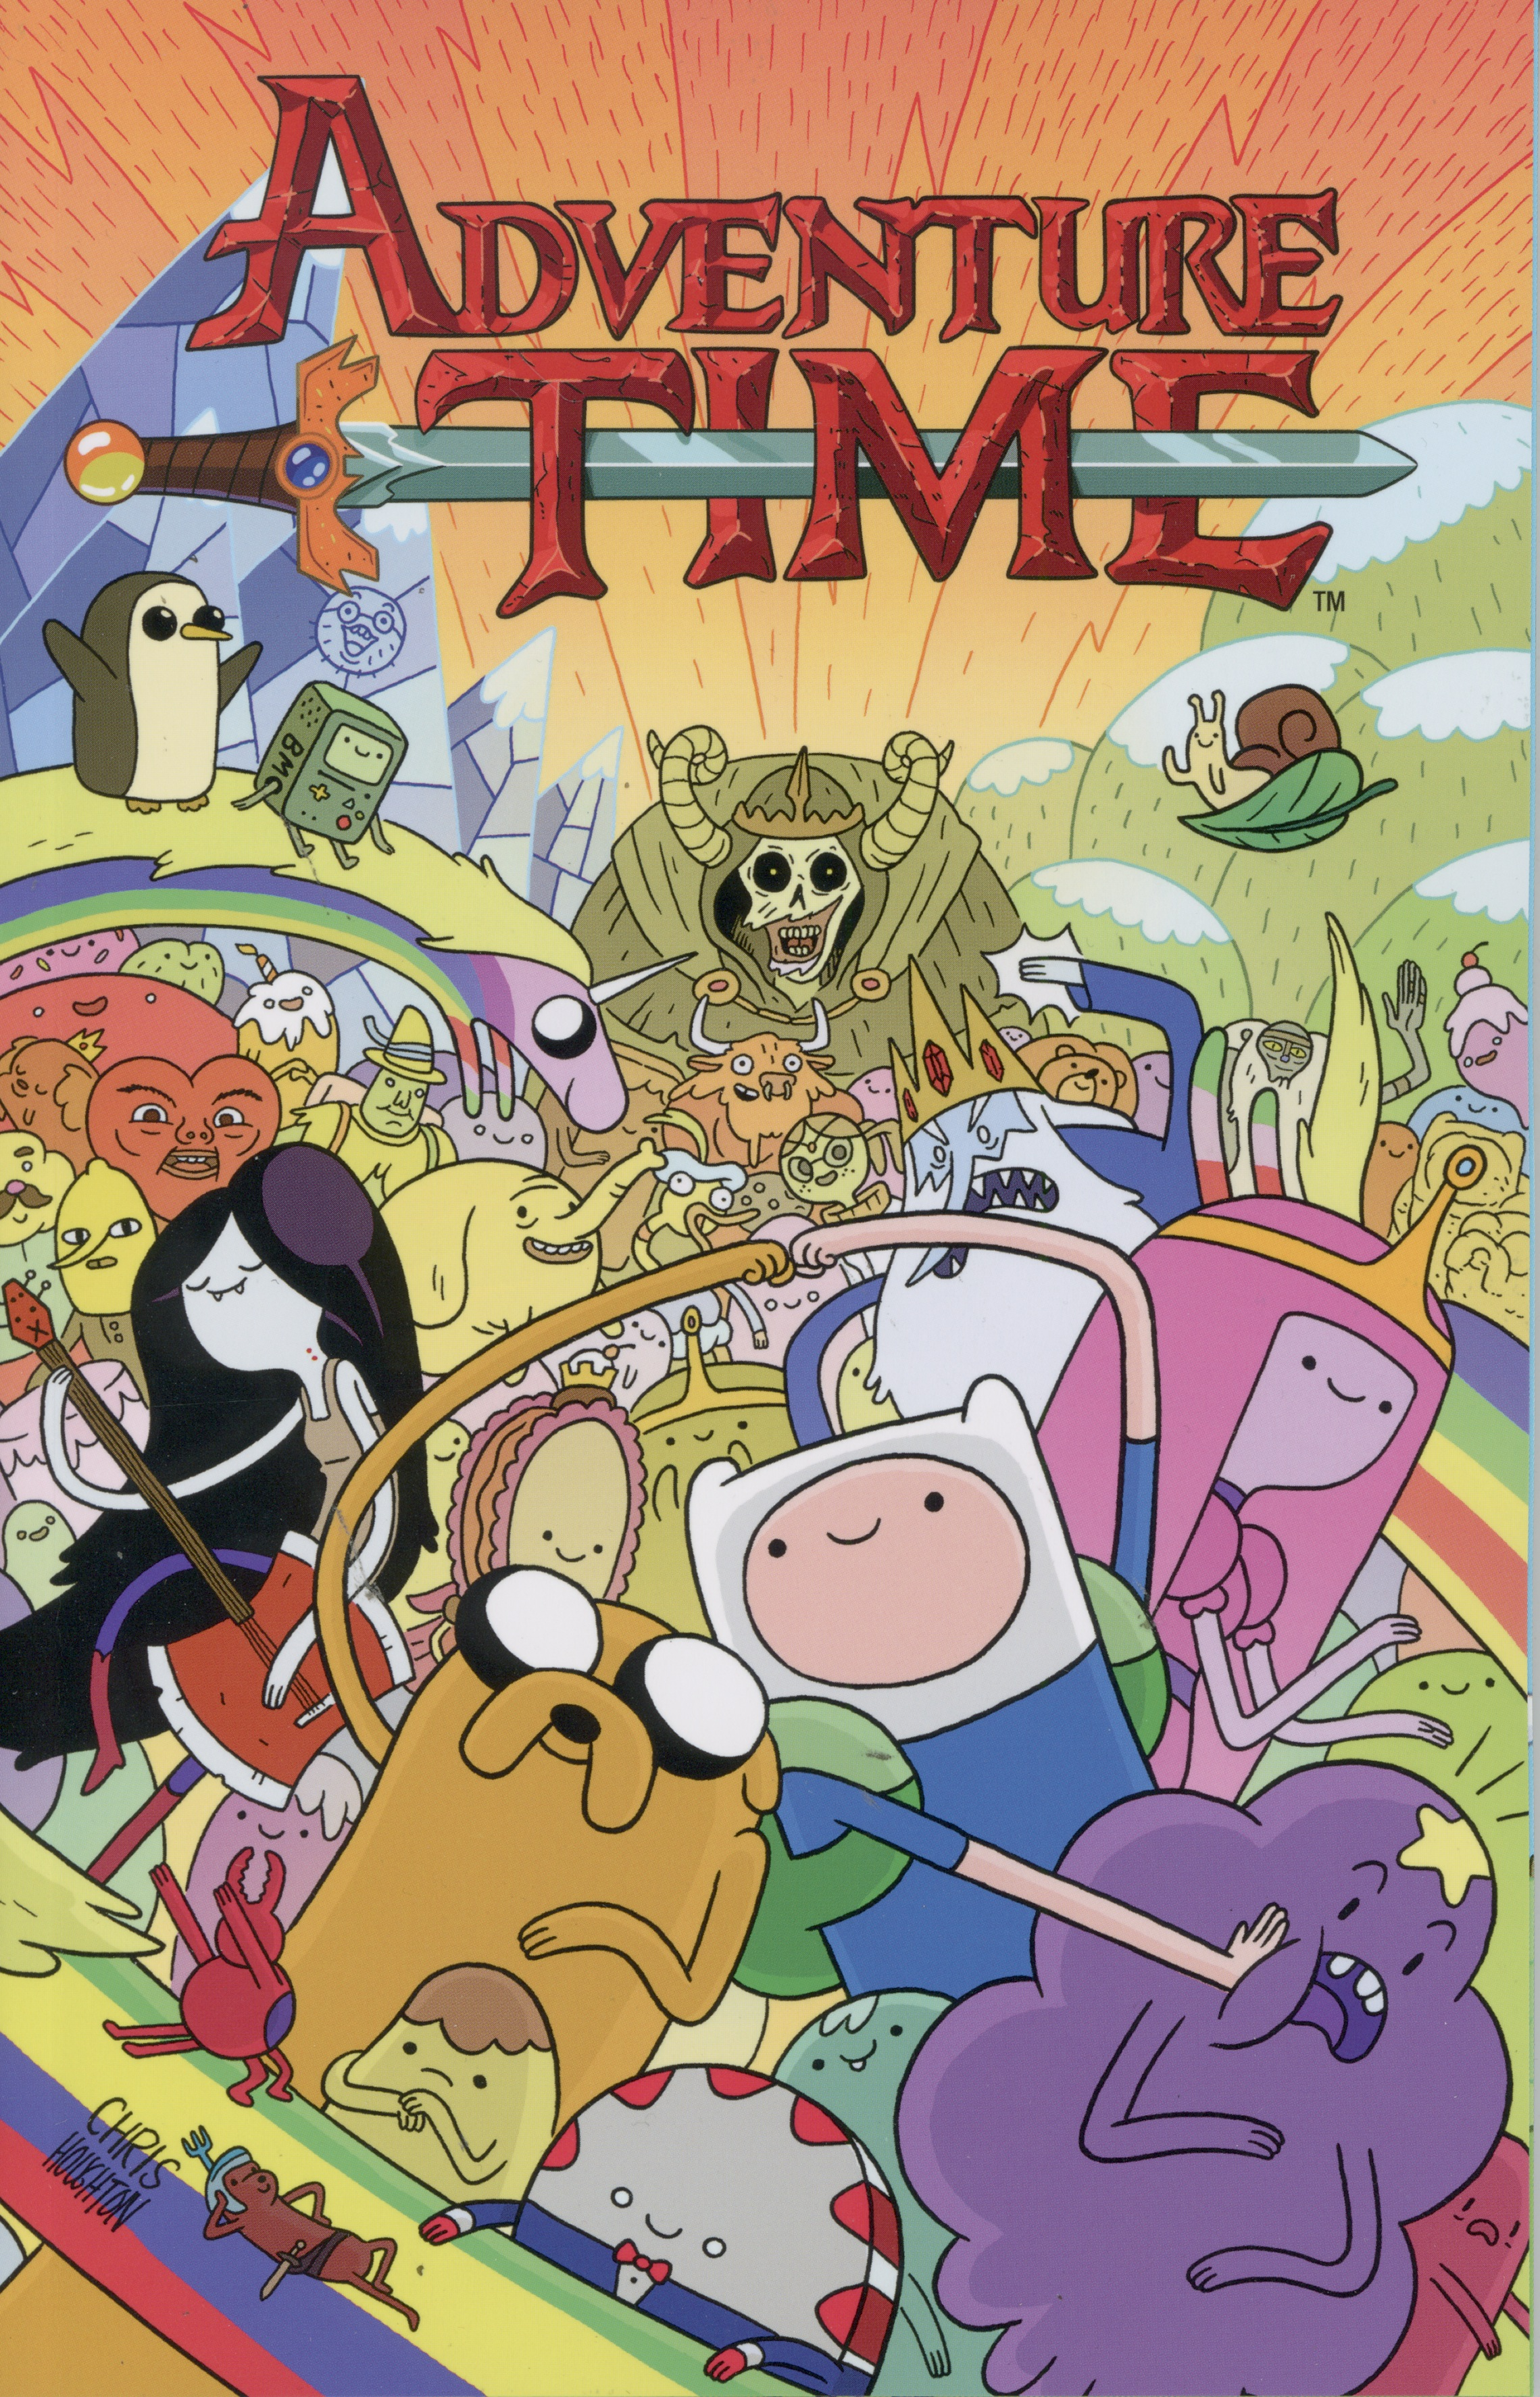 Adventure Time Adventure Time Volume 1 Titan Edition By Ryan North Published By Titan Books Forbiddenplanet Com Uk And Worldwide Cult Entertainment Megastore